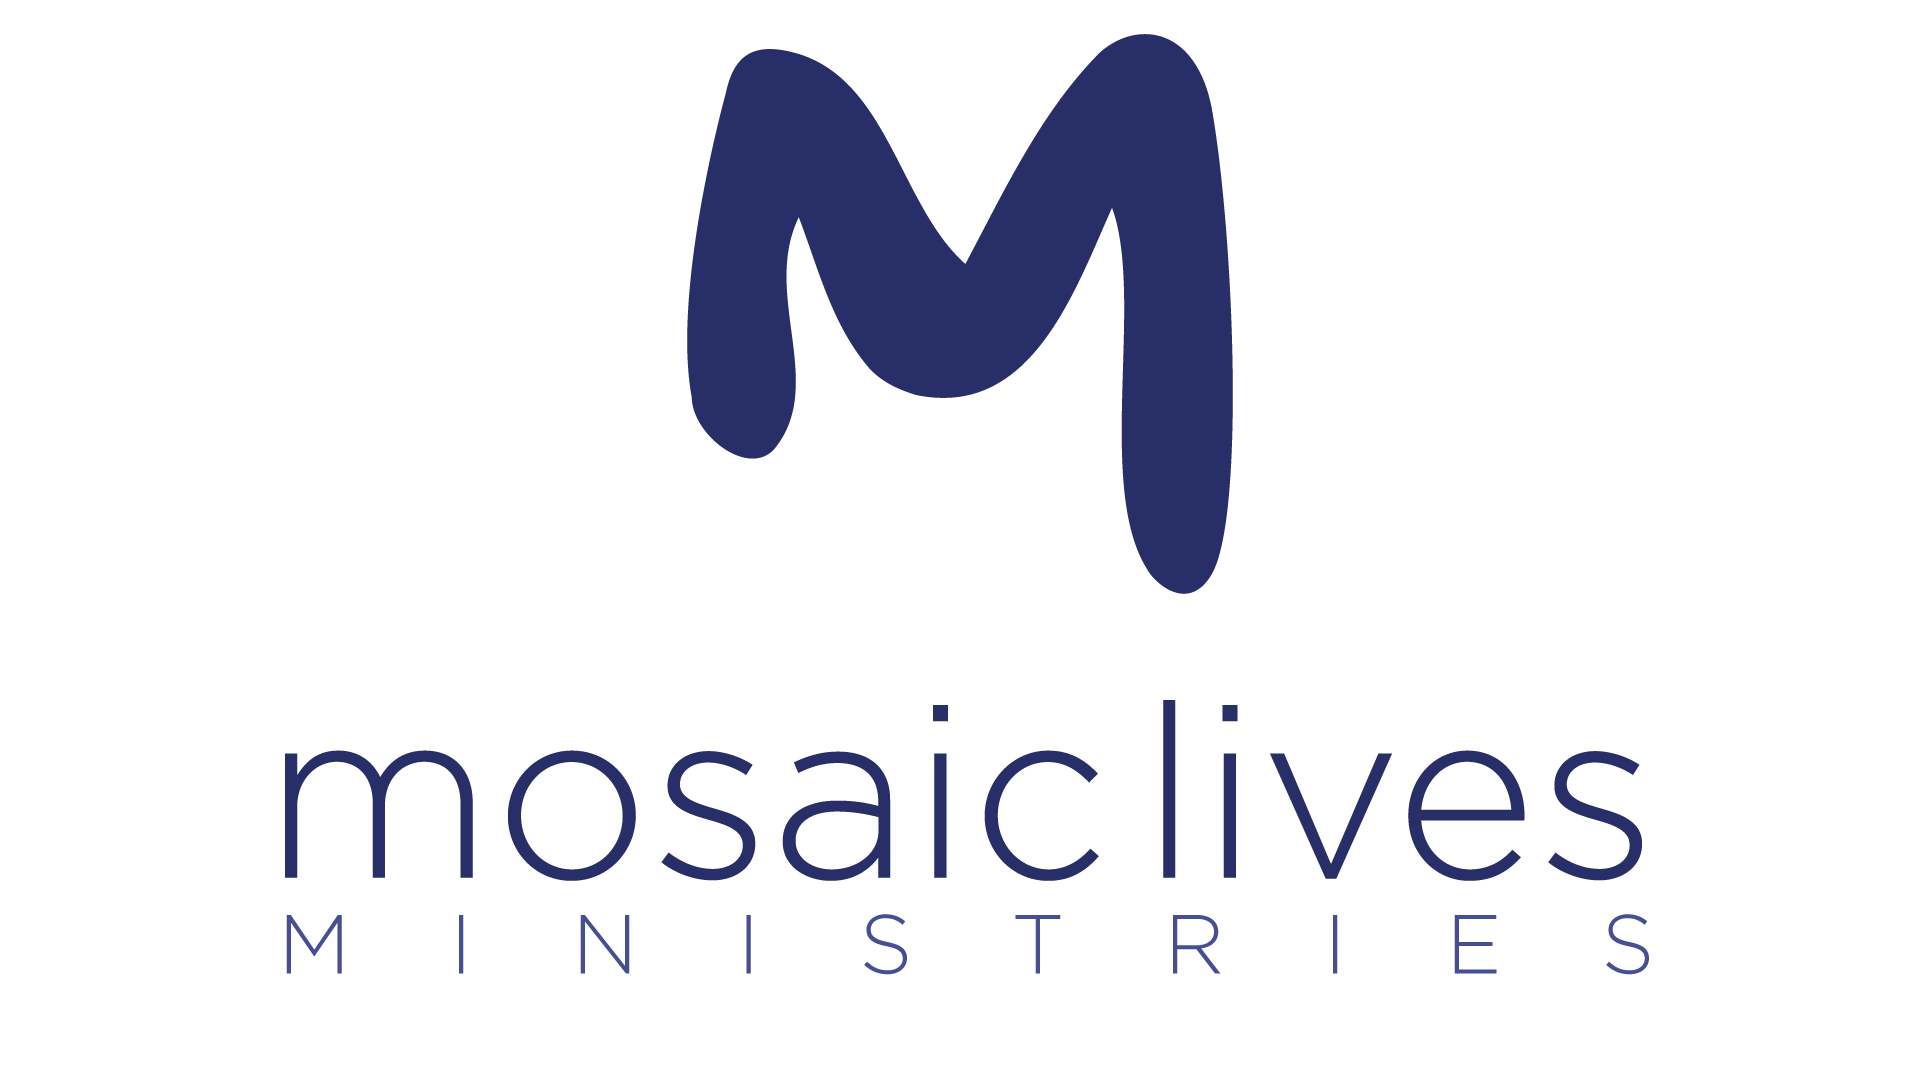 Mosaic Lives Ministries